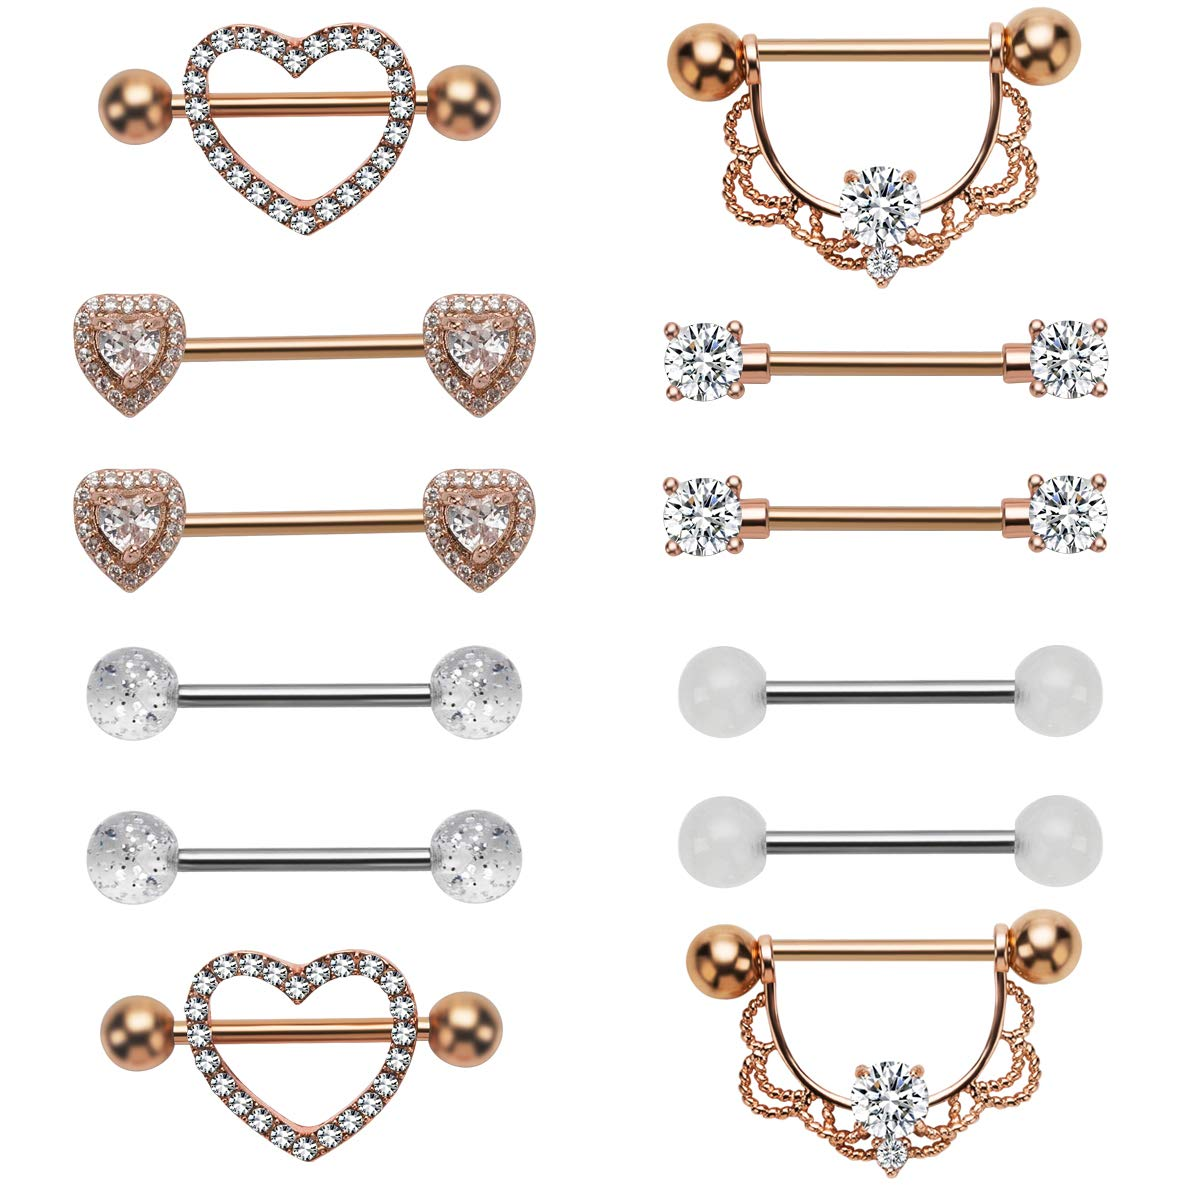 NASAMA Stainless Steel Acrylic Nipple Rings Tongue Ring CZ Barbell Heart-Shape Piercing Body Jewelry (6pair Rose Gold) by NASAMA